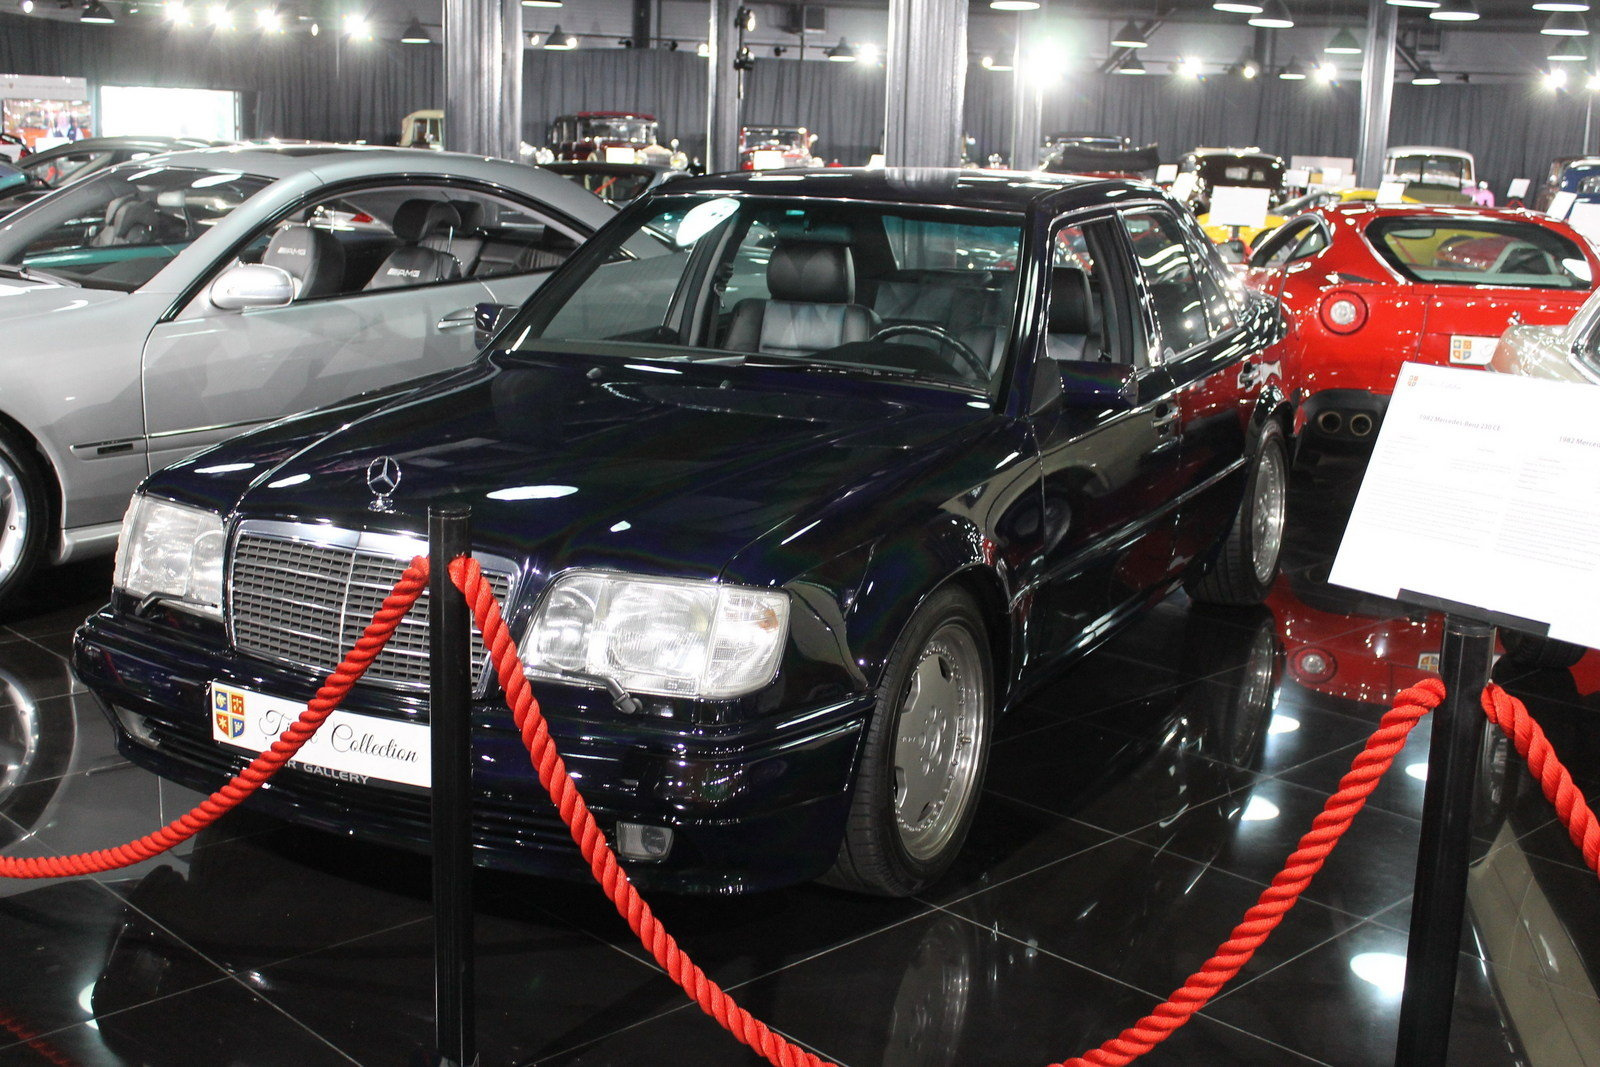 Largest Exotic Car Rally >> A Virtual Tour Of The Tiriac Collection, Romania's Largest Classic Car Exhibit - Picture 675932 ...